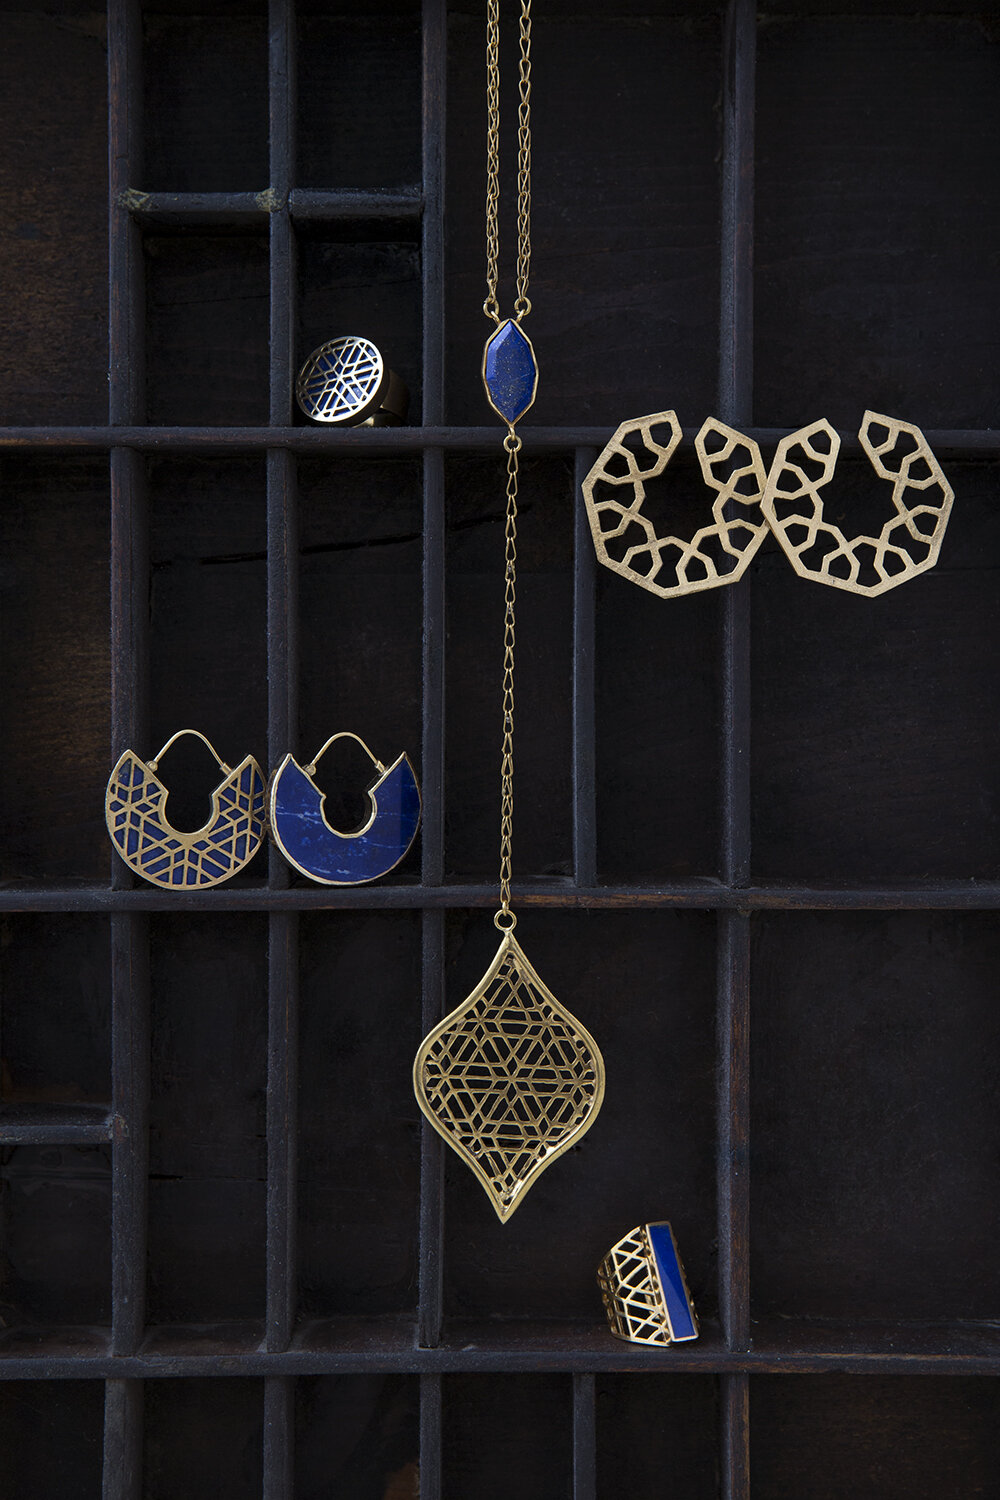 Lapis Lazuli Jewellery. Handcrafted in Afghanistan.